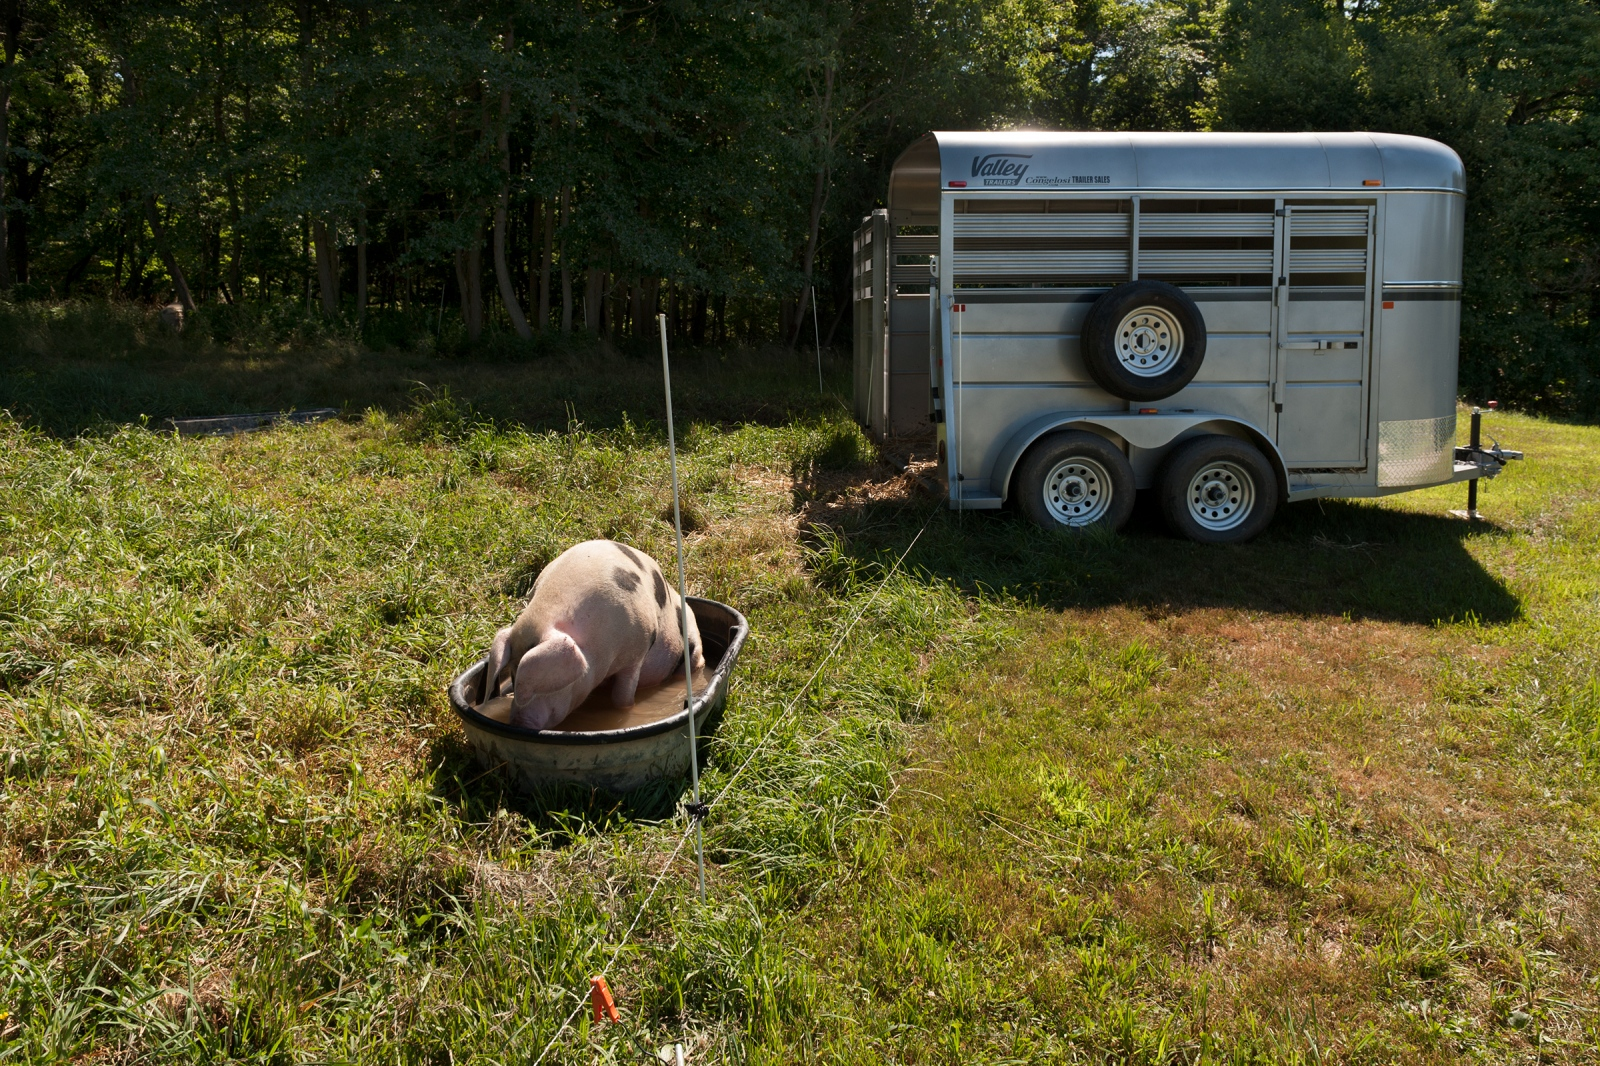 A Gloucesershire Old Spot, cools off on a hot summer day. A trailer is placed in the pasture, so that pigs become accustomed to it before being transported to slaughter.